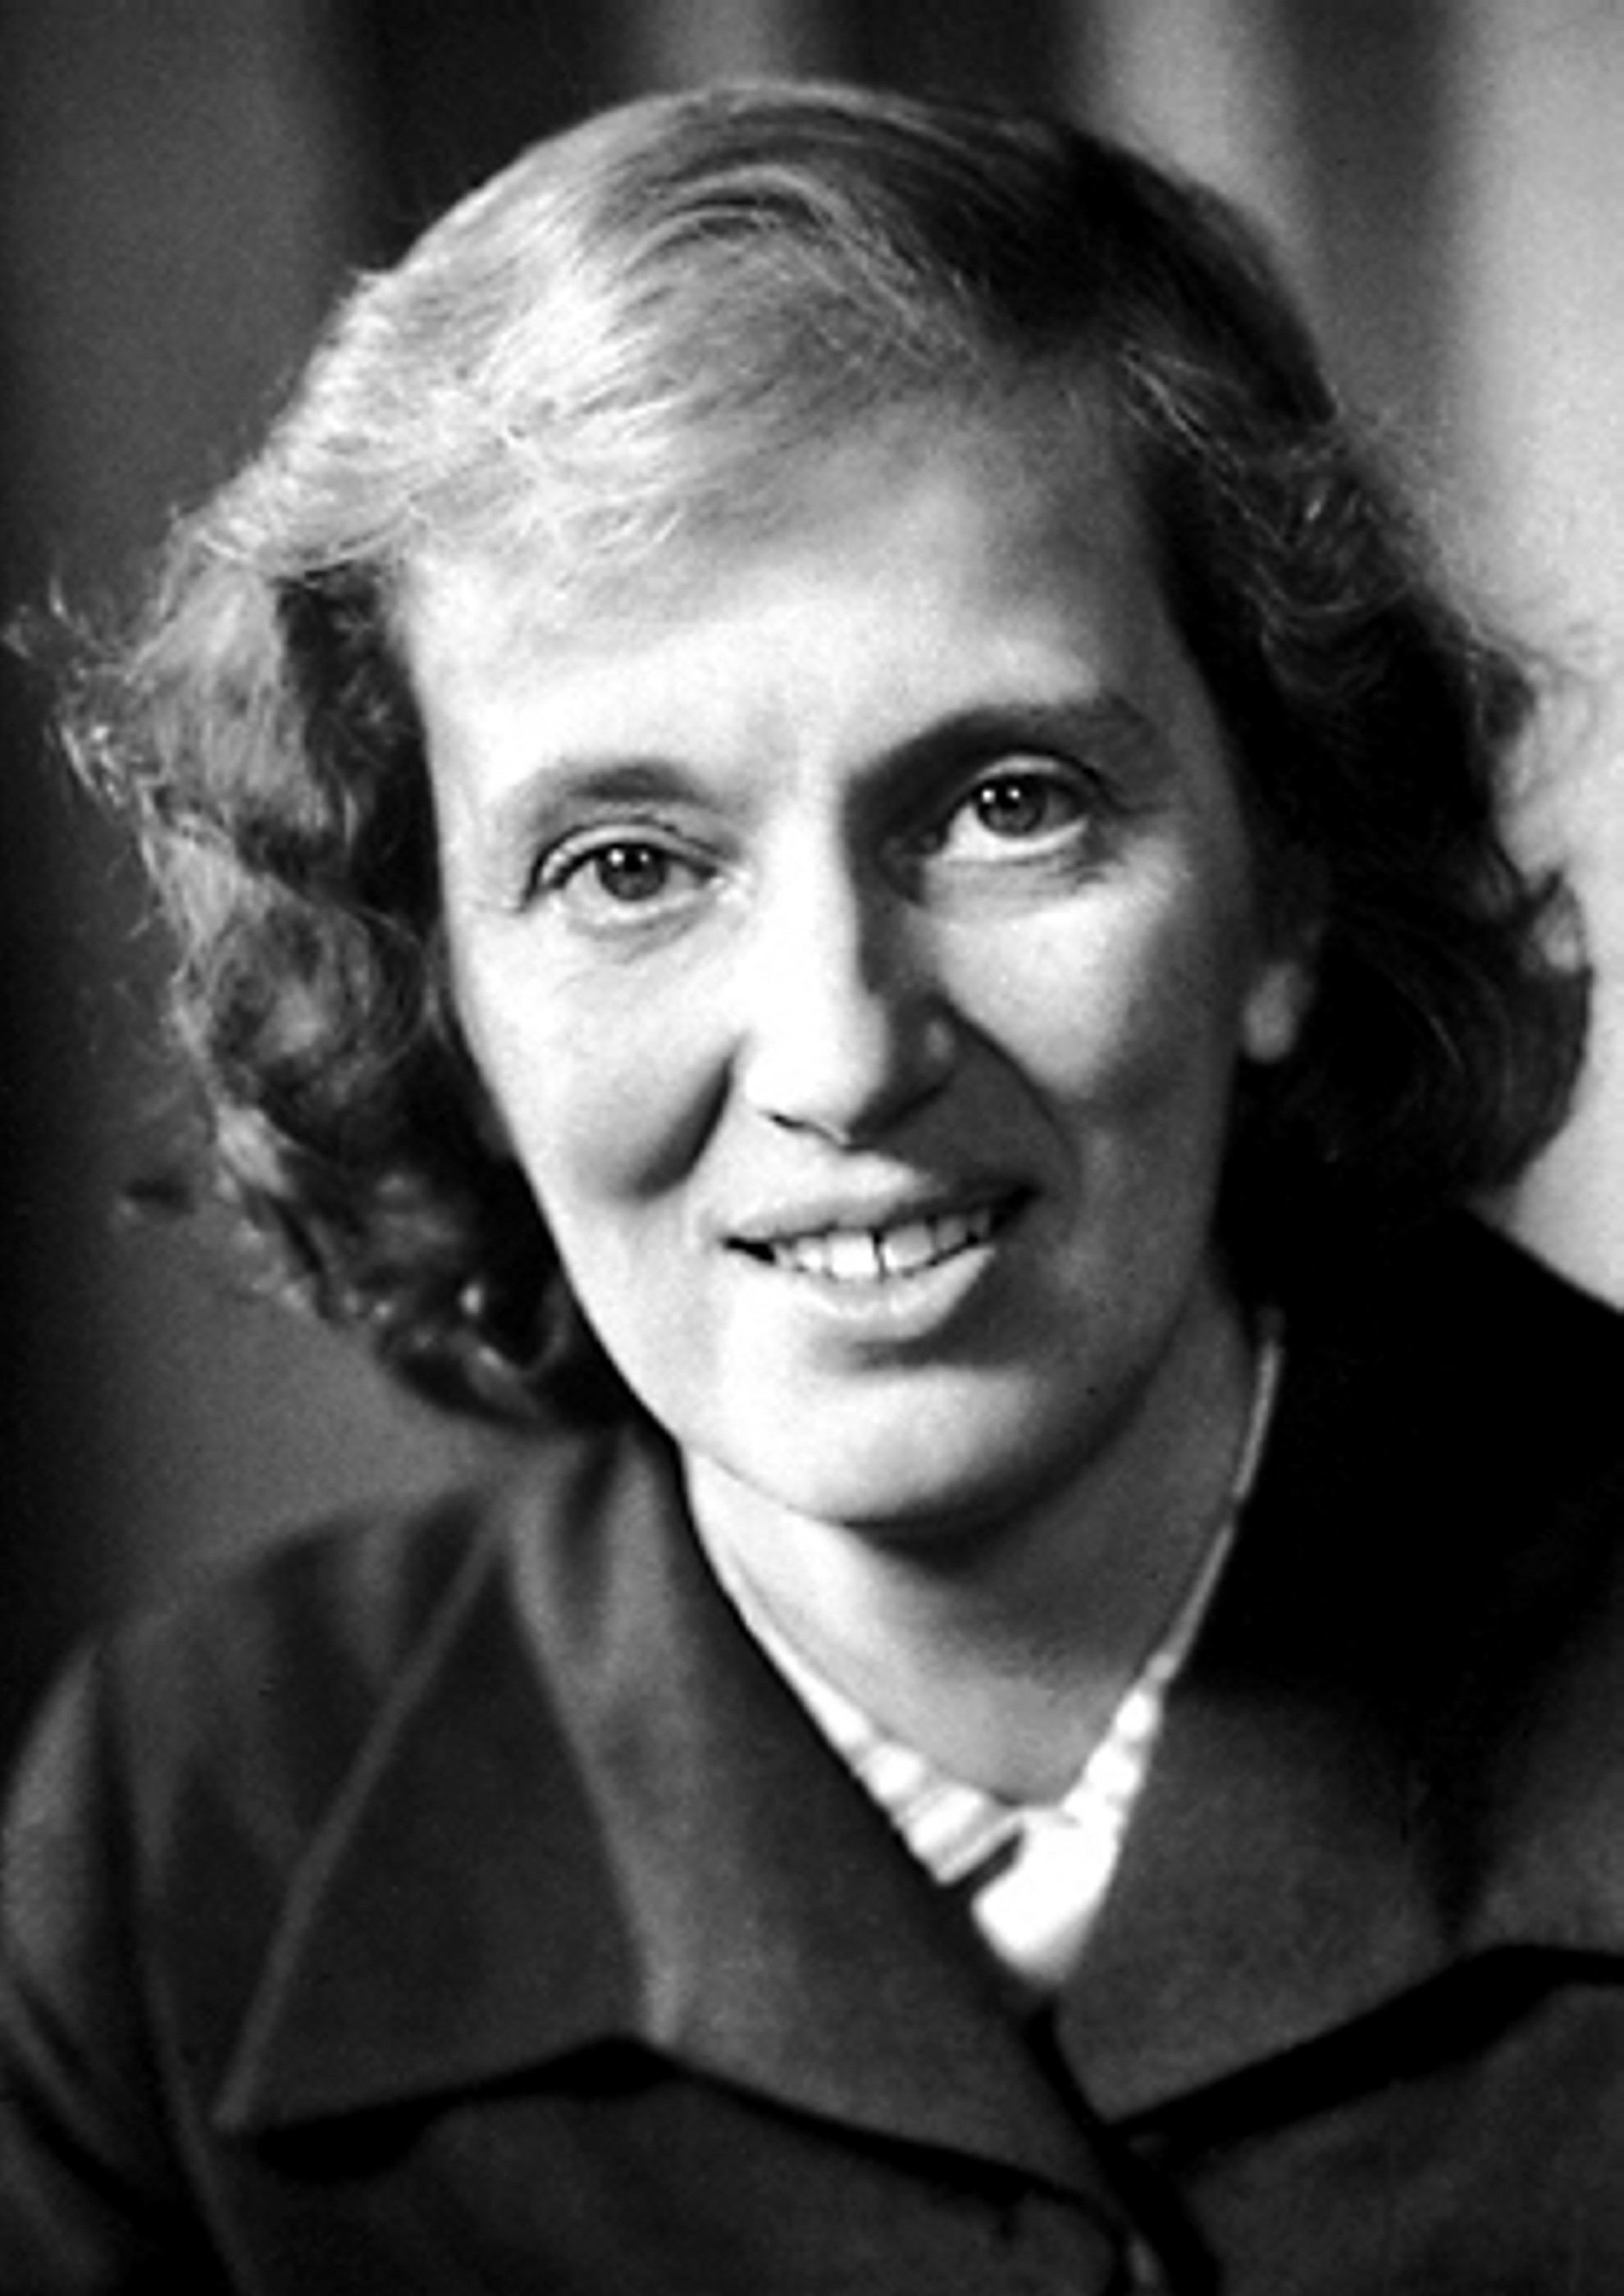 dorothy hodgkin Dorothy mary crowfoot hodgkin om frs (12 may 1910 – 29 july 1994) was a british chemist who developed protein crystallography , for which she won the nobel prize in chemistry in 1964.